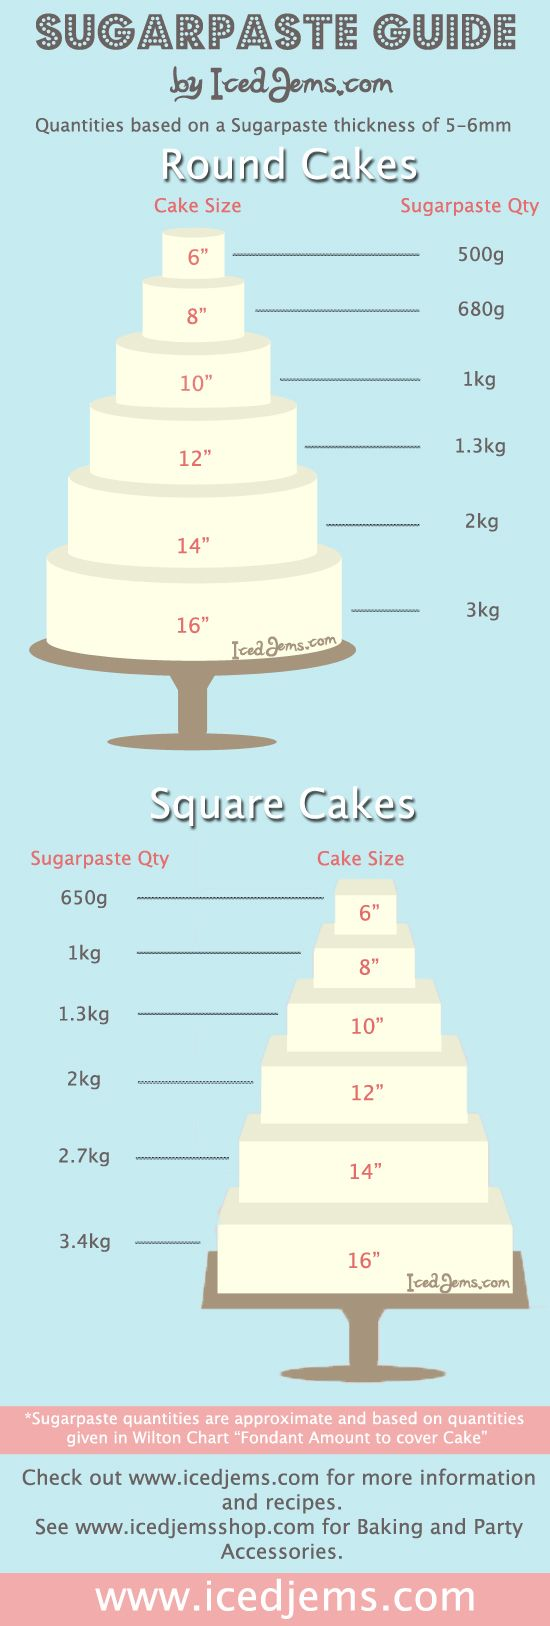 Handy table for calculating how much fondant you need to cover a cake.